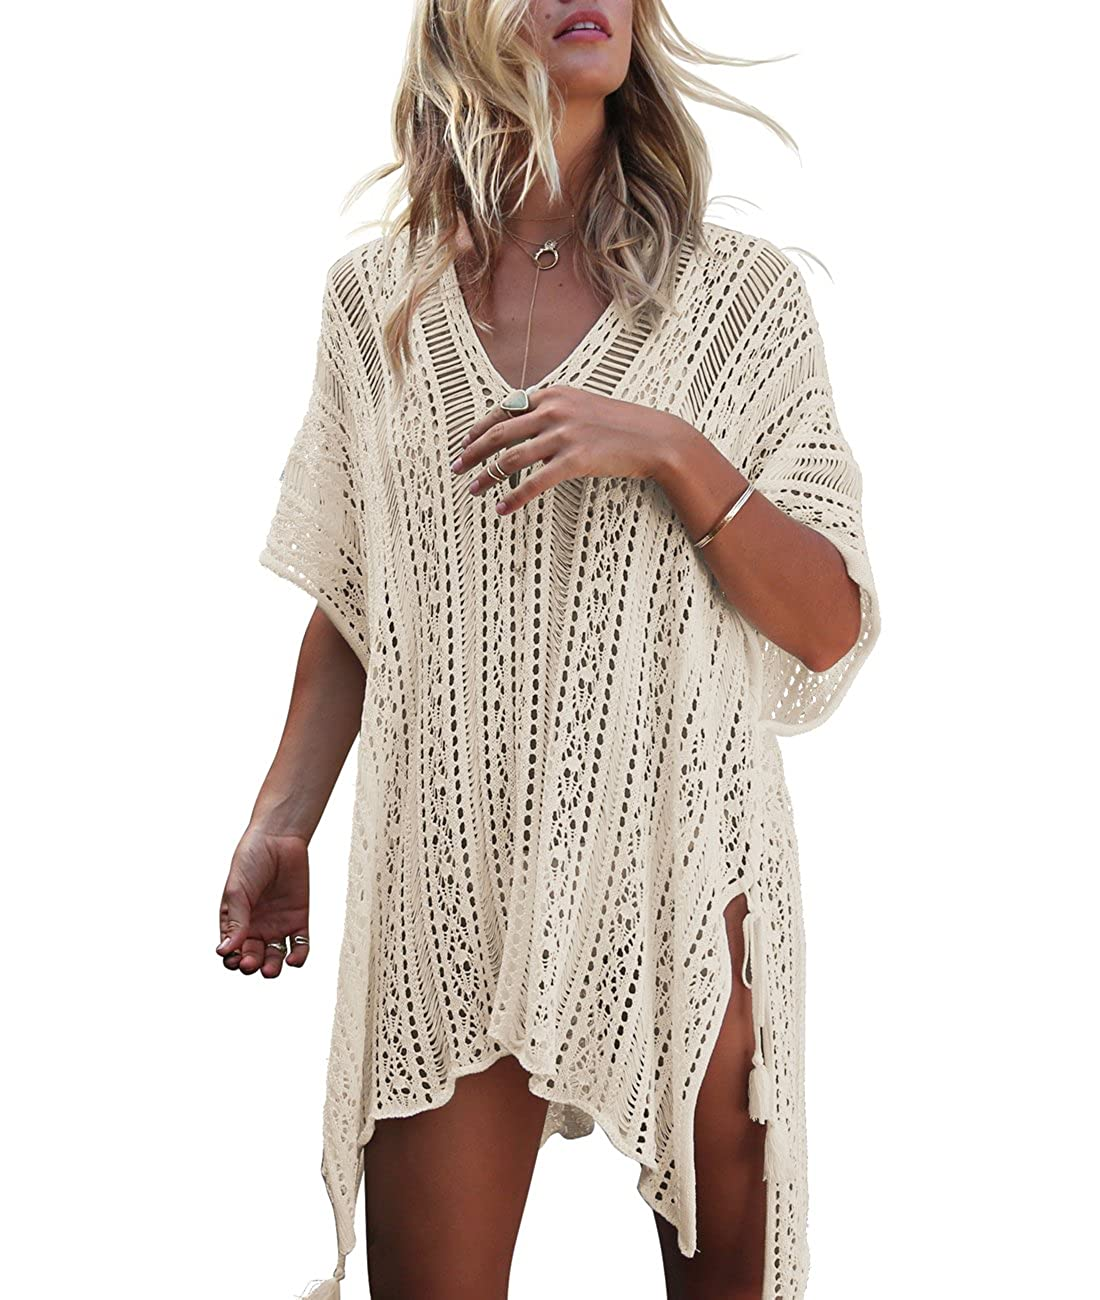 2cc69a5053bfc Sanifer Women's Sexy Crochet Lace Tunic Swim Cover Up Beach Swimsuit  Bathing Suit Cover Up Dress Tshirt (Beige) at Amazon Women's Clothing store: